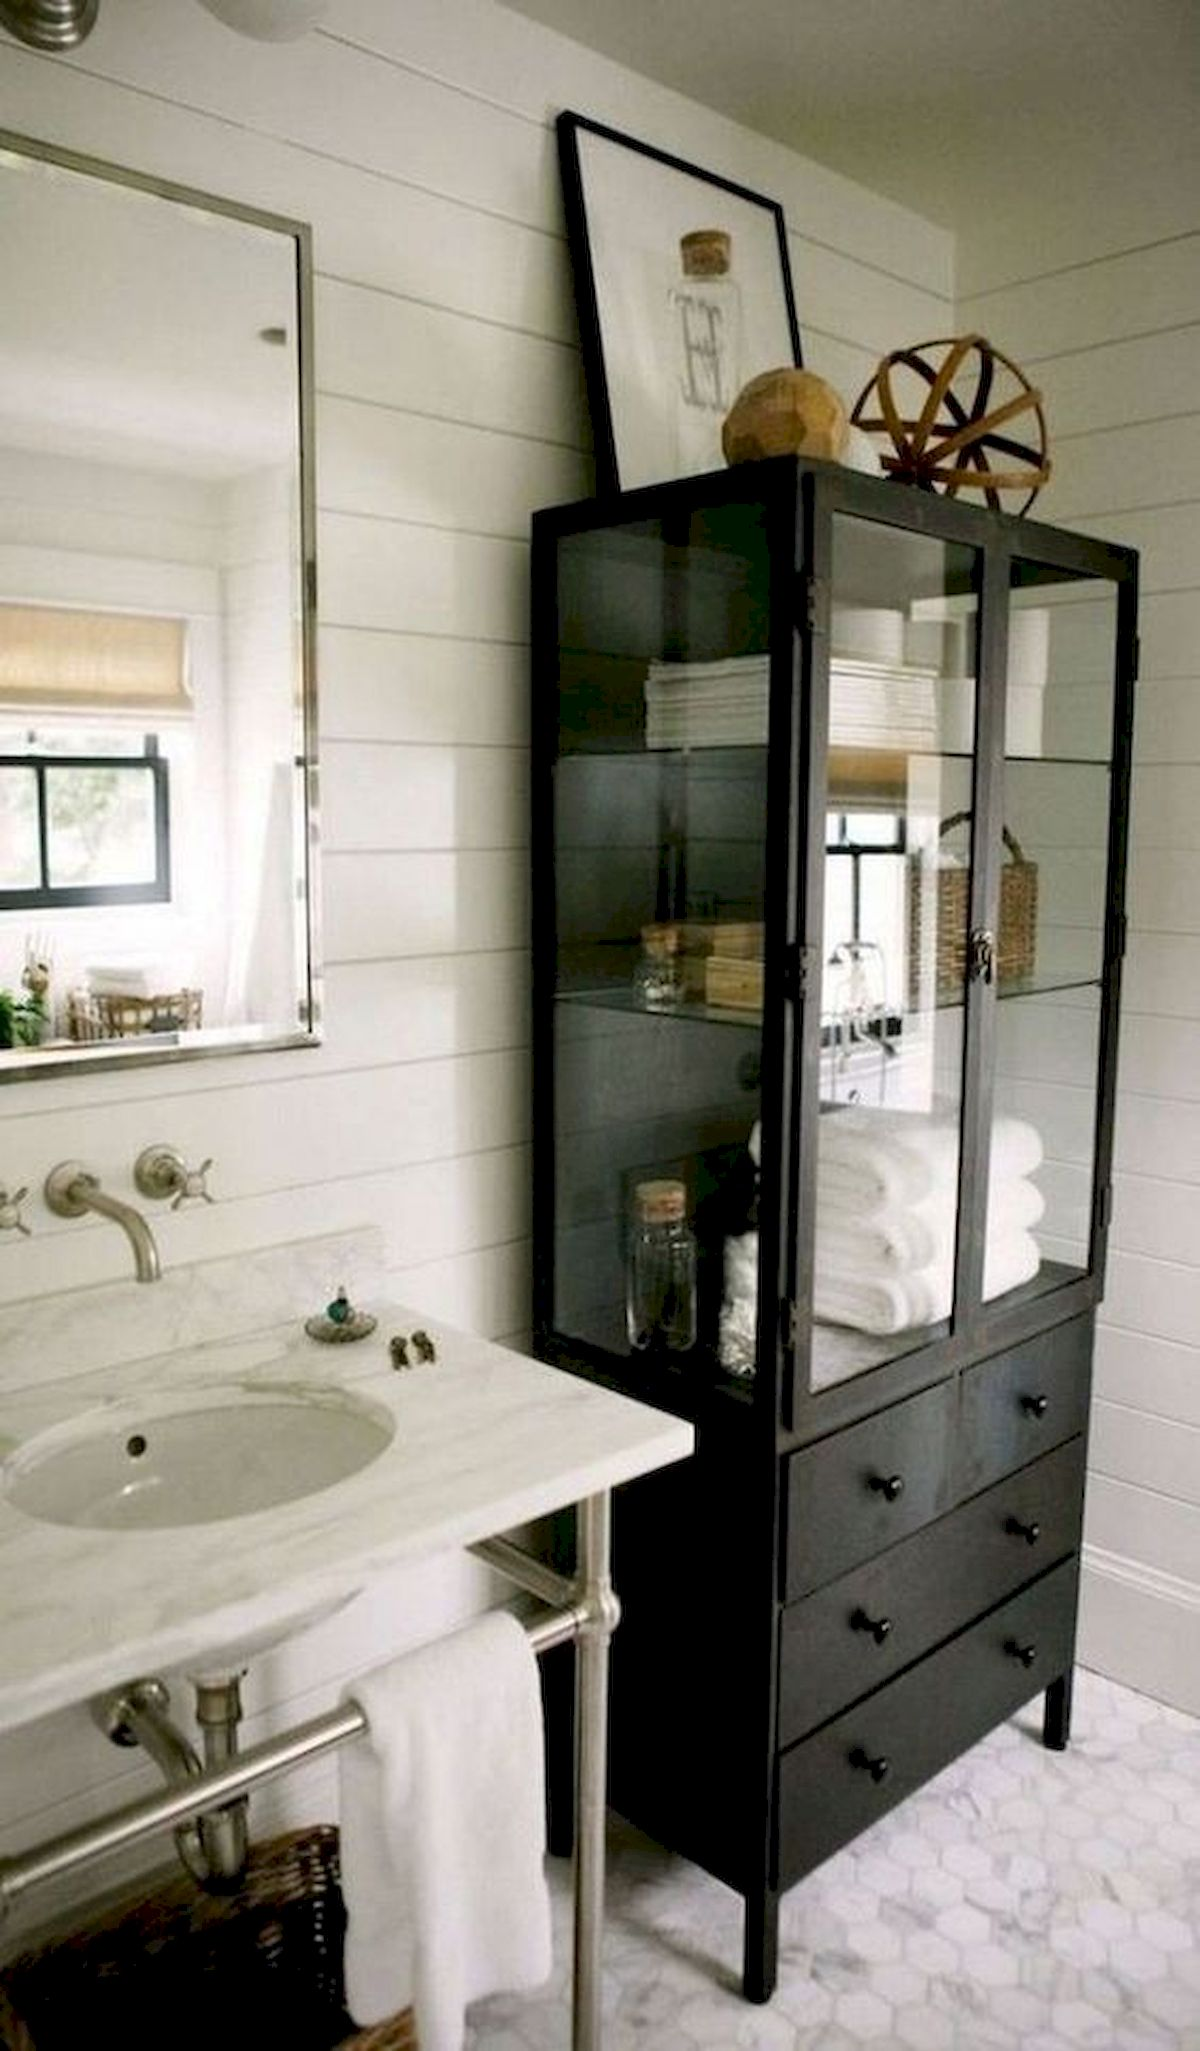 50 Best DIY Storage Design Ideas to Maximize Your Small Bathroom Space (49)